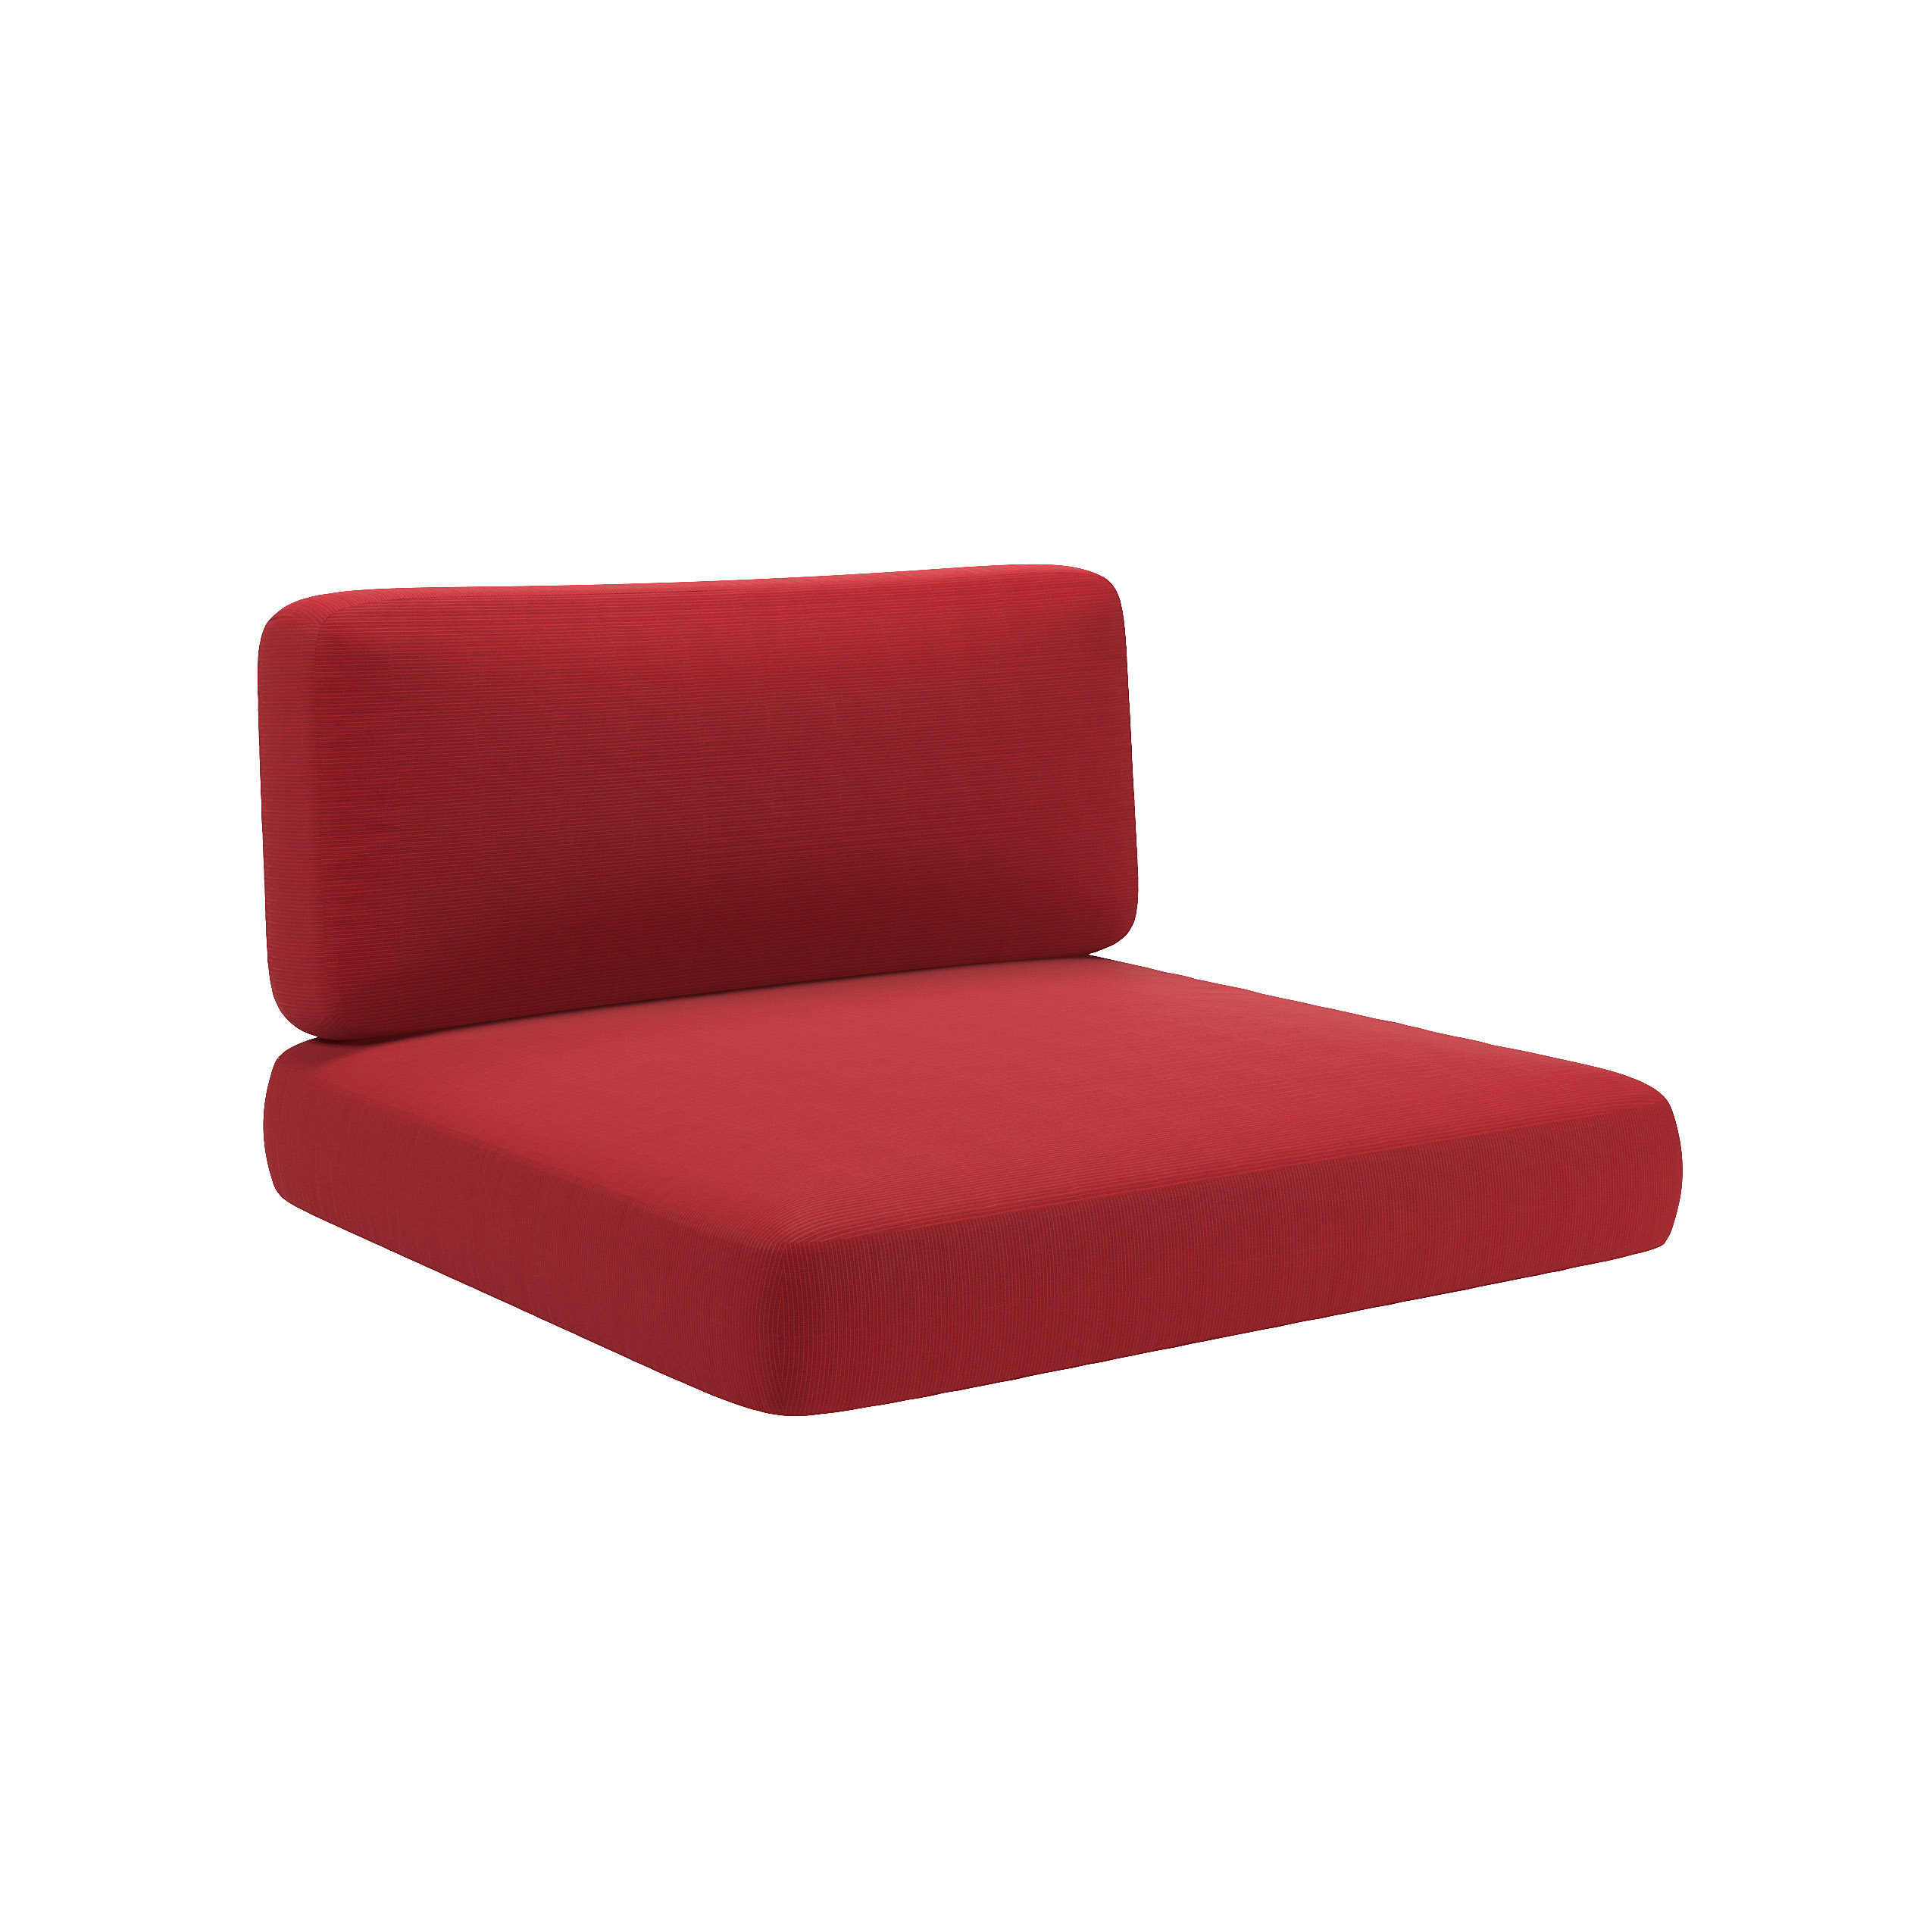 Patio Chair Replacement Cushions Patio Chair Replacement Seat Cushions Red 2pc